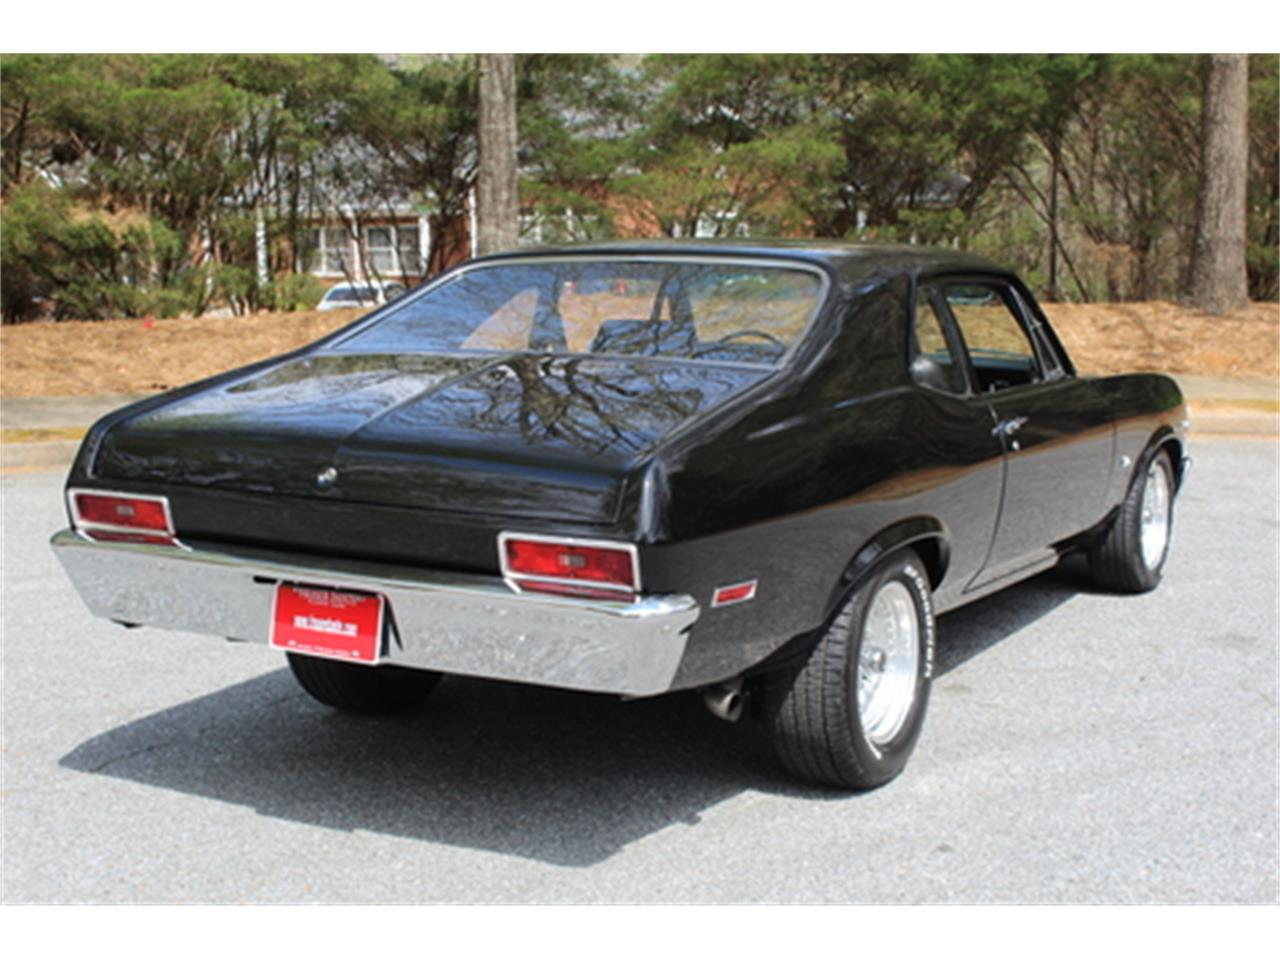 Large Picture of '71 Chevrolet Nova located in Roswell Georgia - $22,950.00 - N5J9